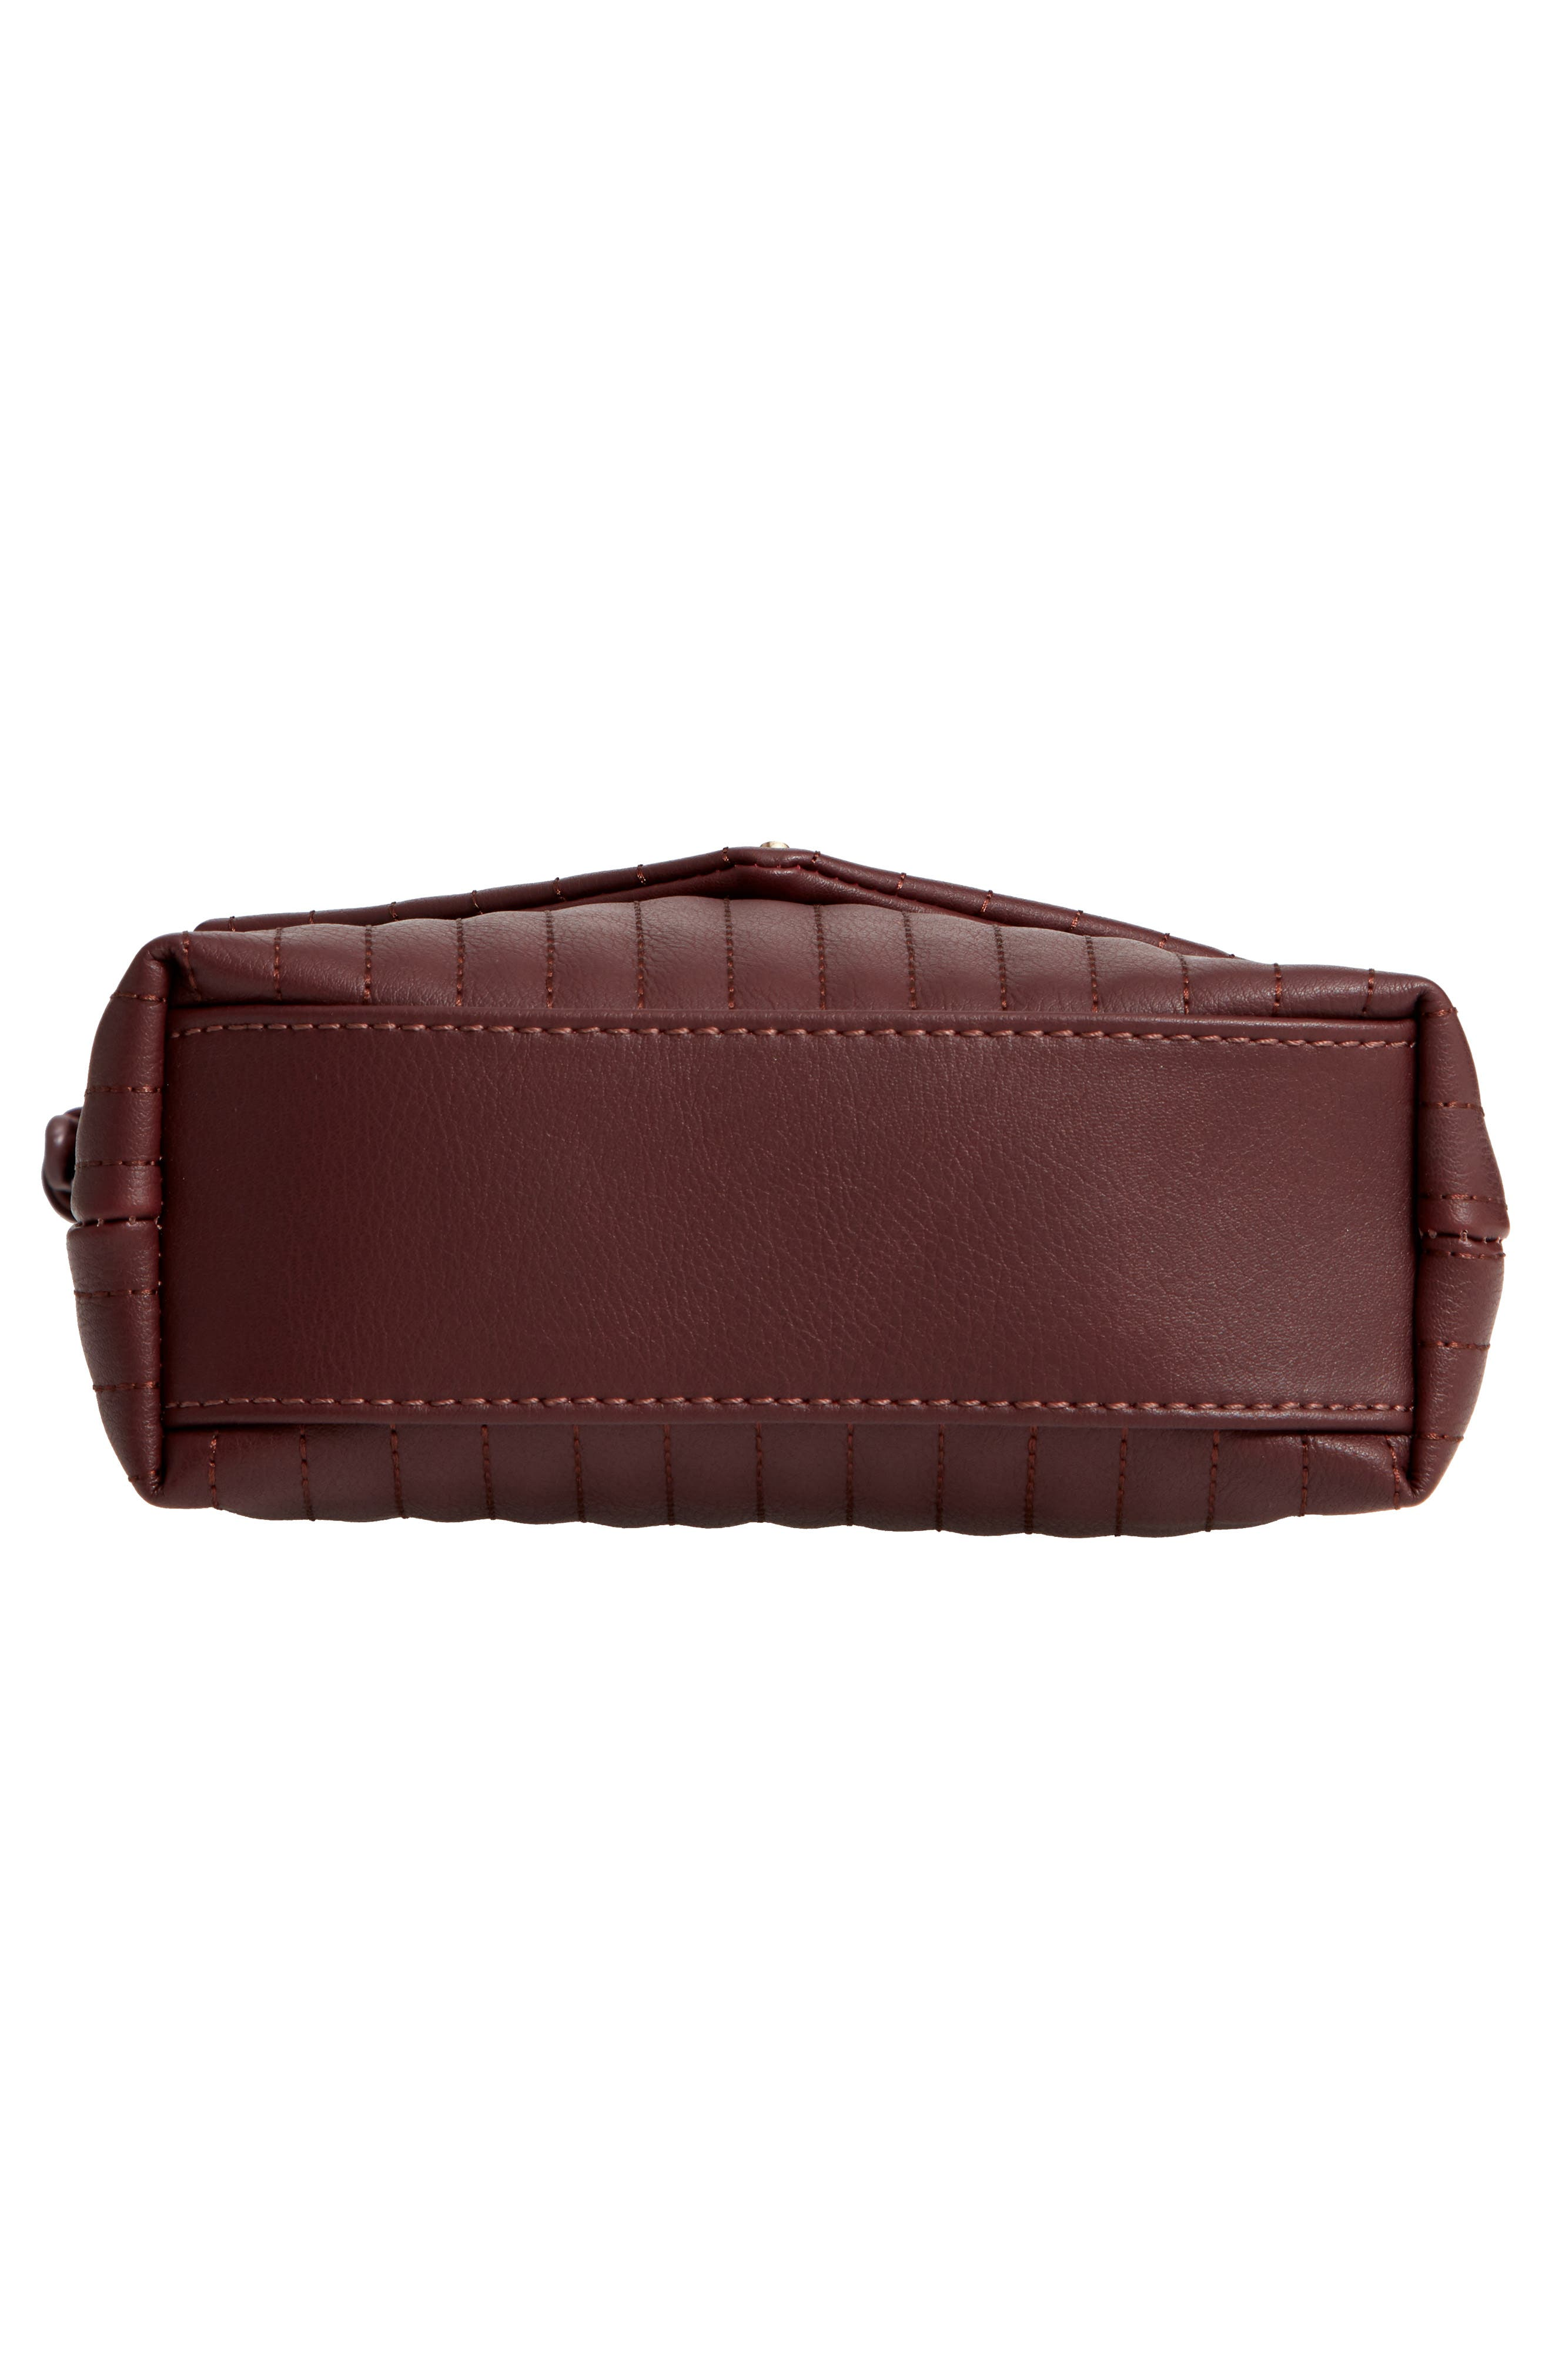 SOLE SOCIETY, Urche Faux Leather Crossbody Bag, Alternate thumbnail 7, color, OXBLOOD